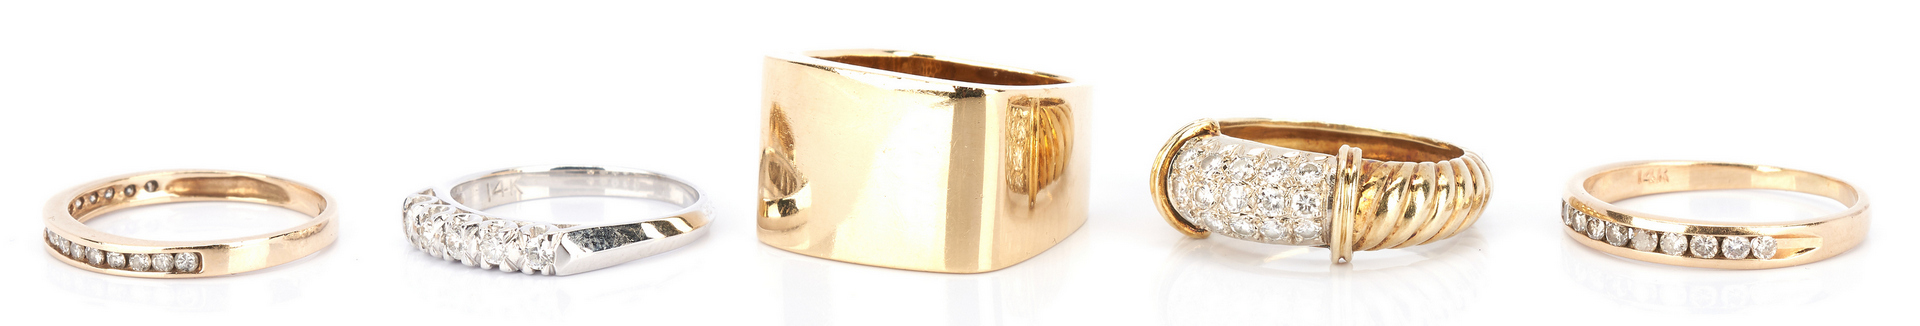 Lot 724: 5 Ladies Gold and Diamond Rings